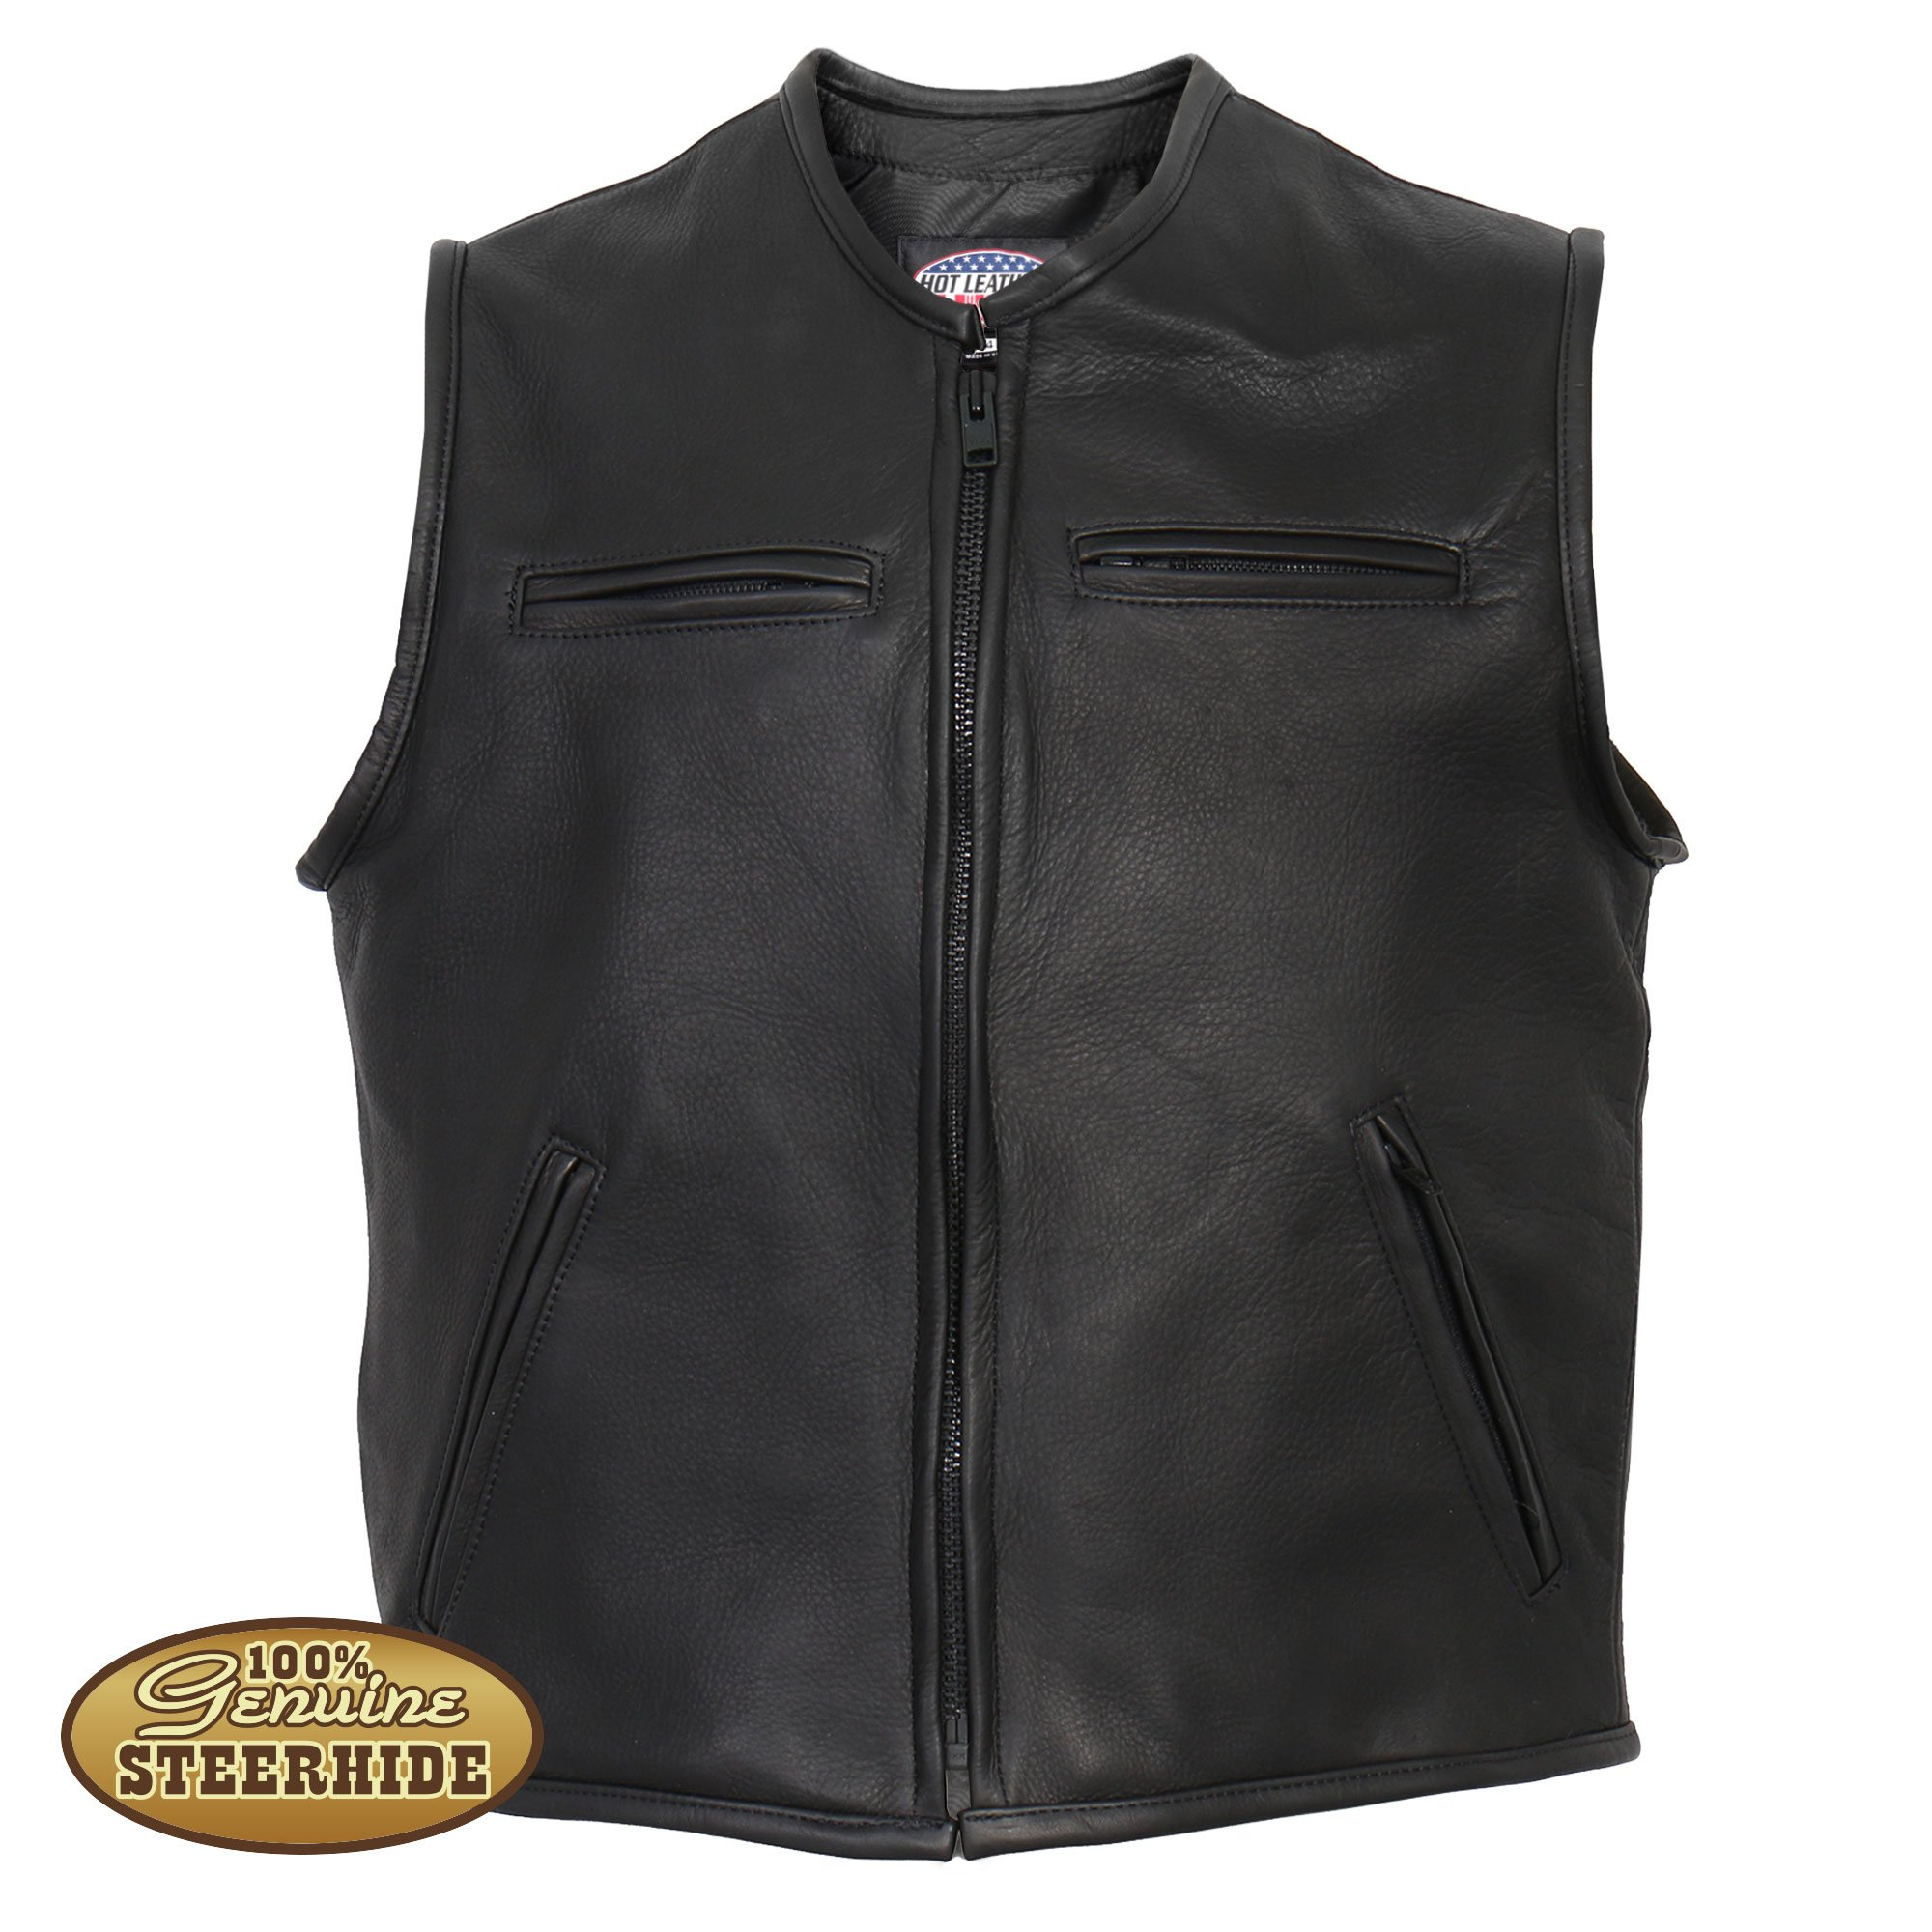 black leather vest hot leathers menu0027s usa made premium steerhide leather vest FYLKTGM